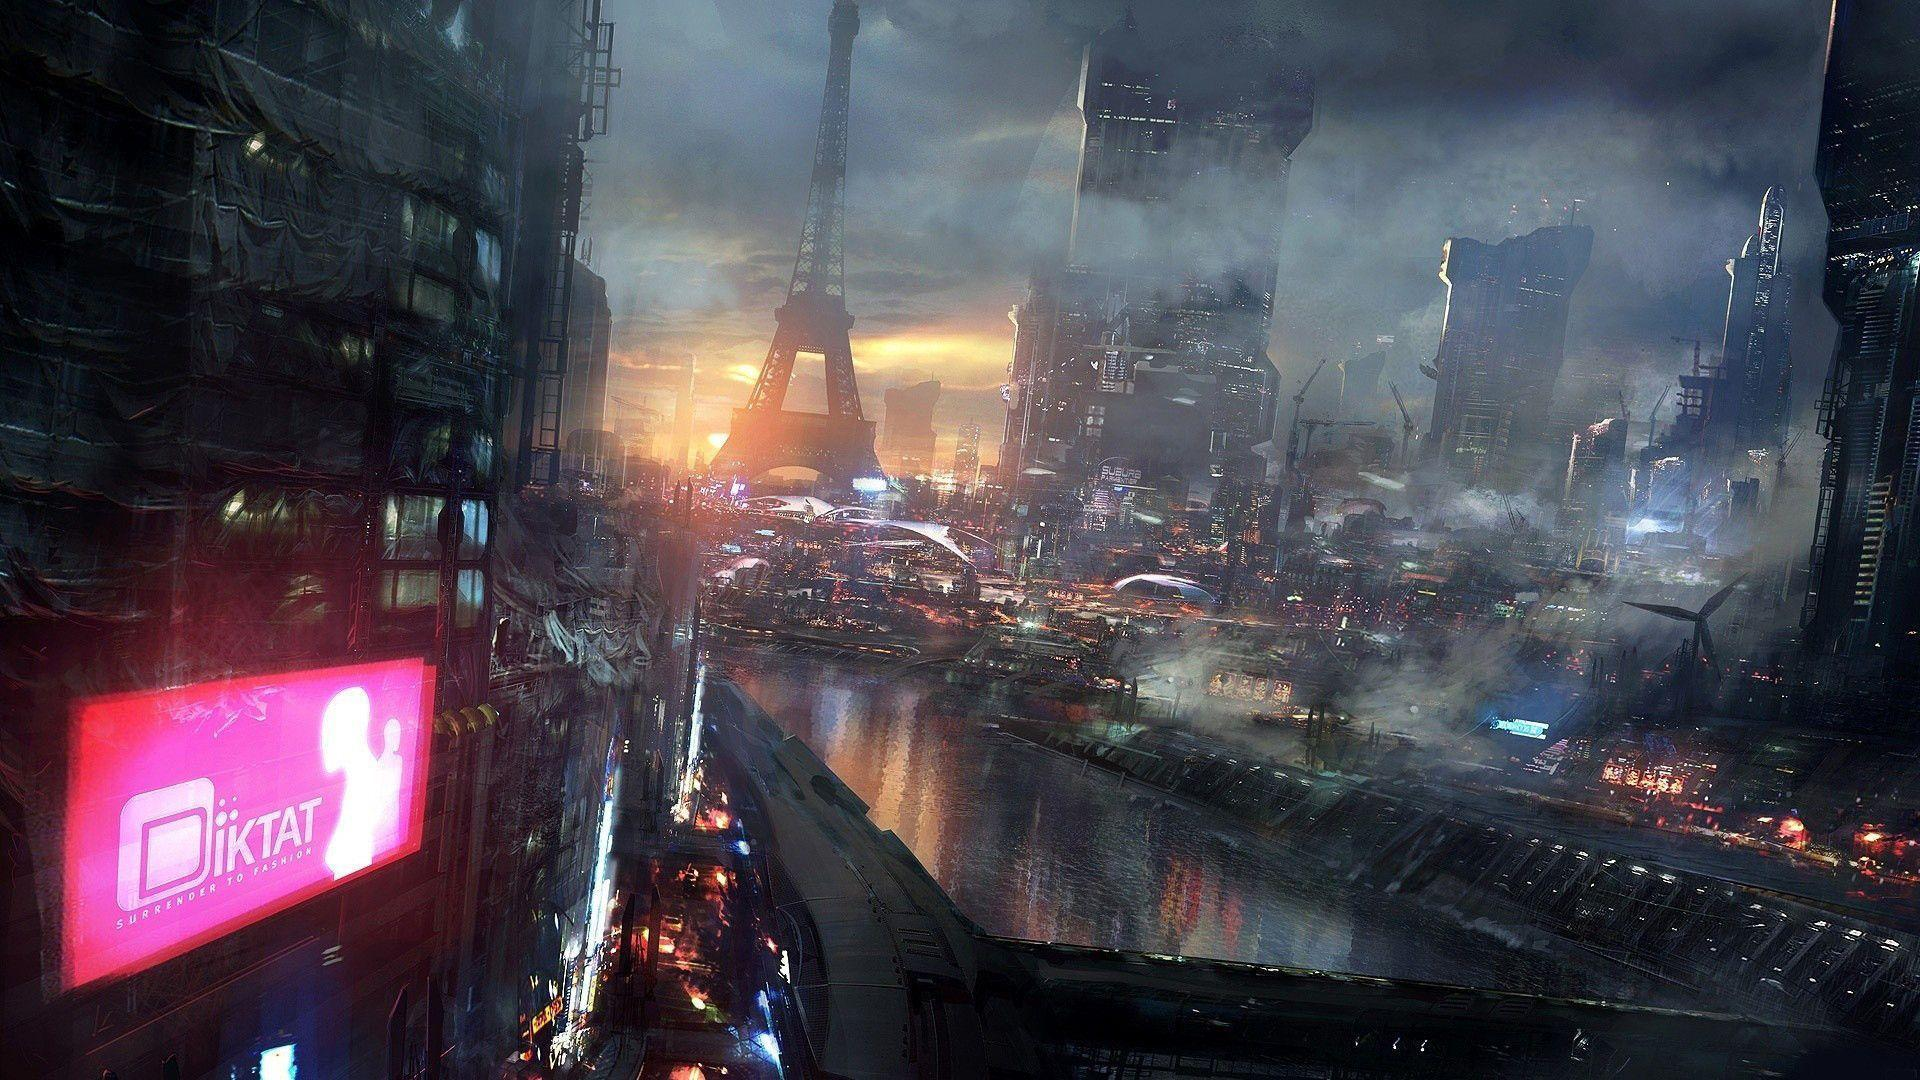 Future City Night Lights High Resolution Wallpaper HD